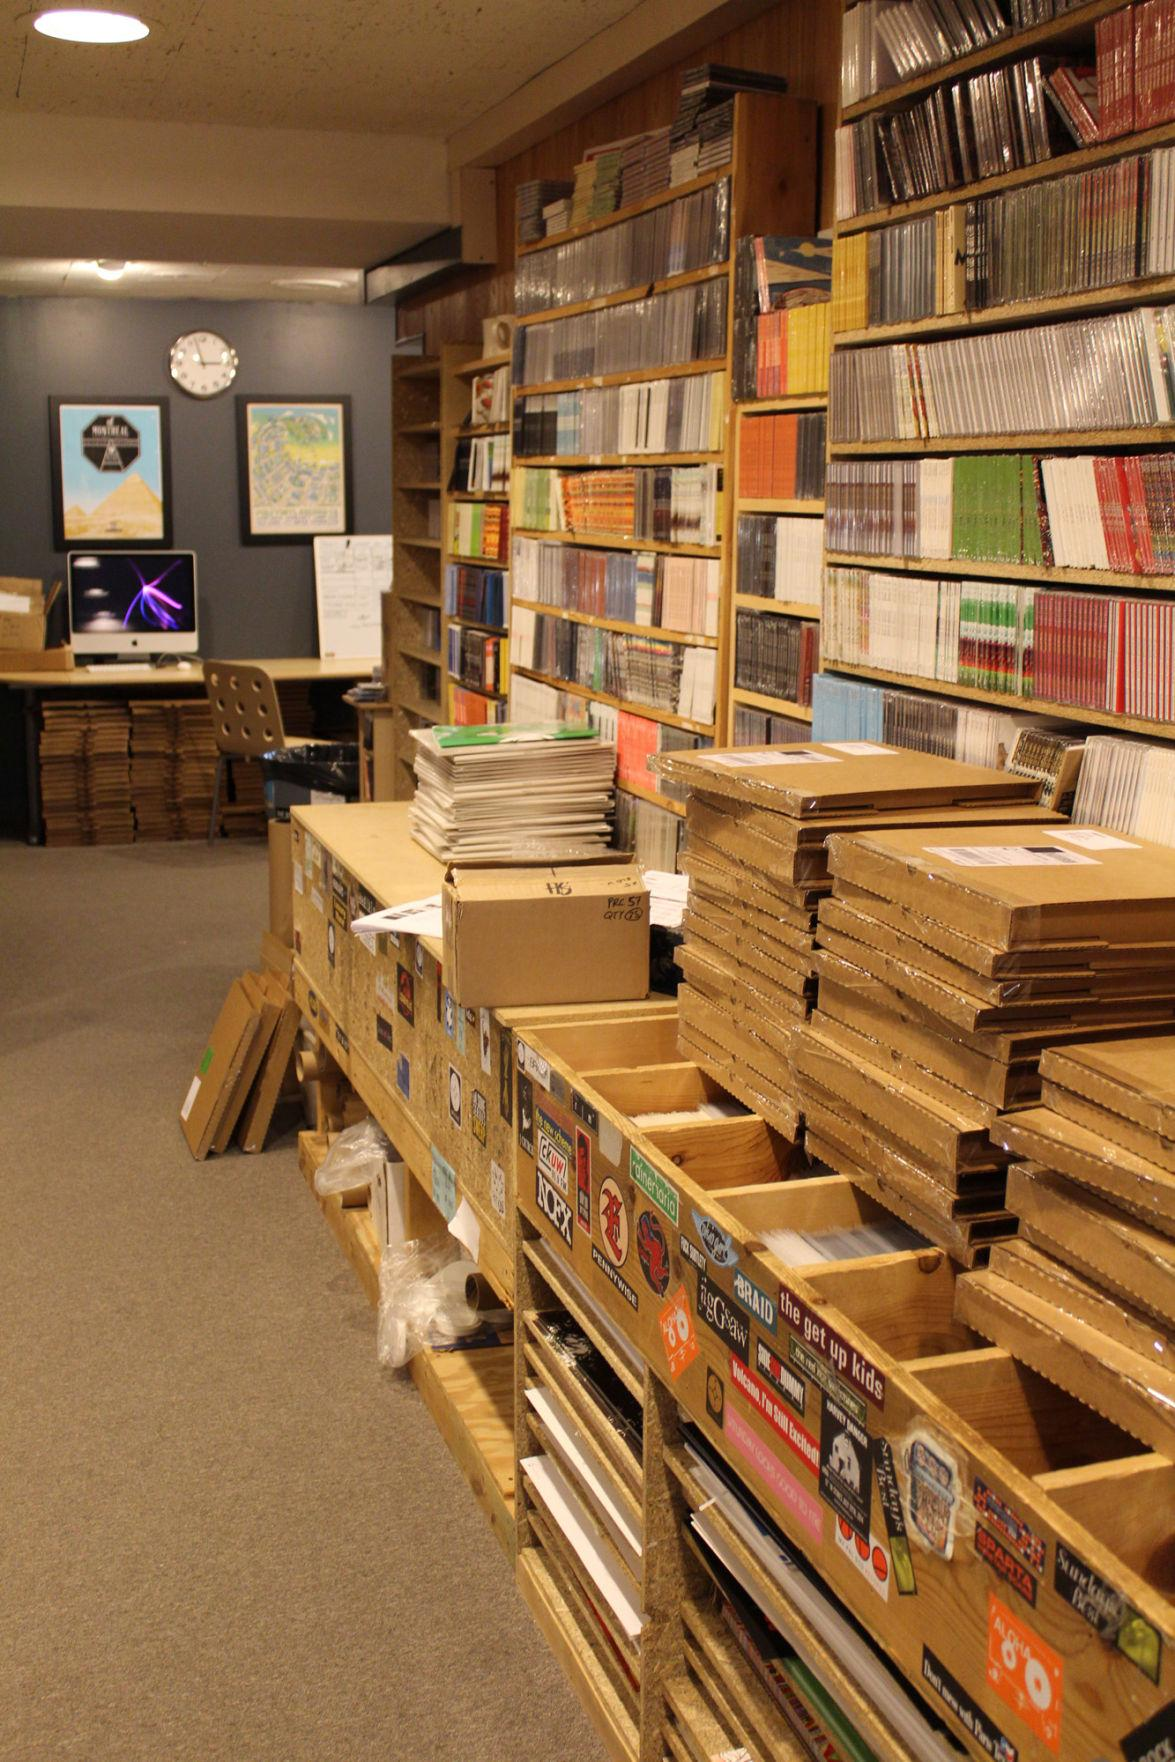 Vinyl records stack the shelves of Polyvinyl Record Co.'s offices in downtown Champaign.